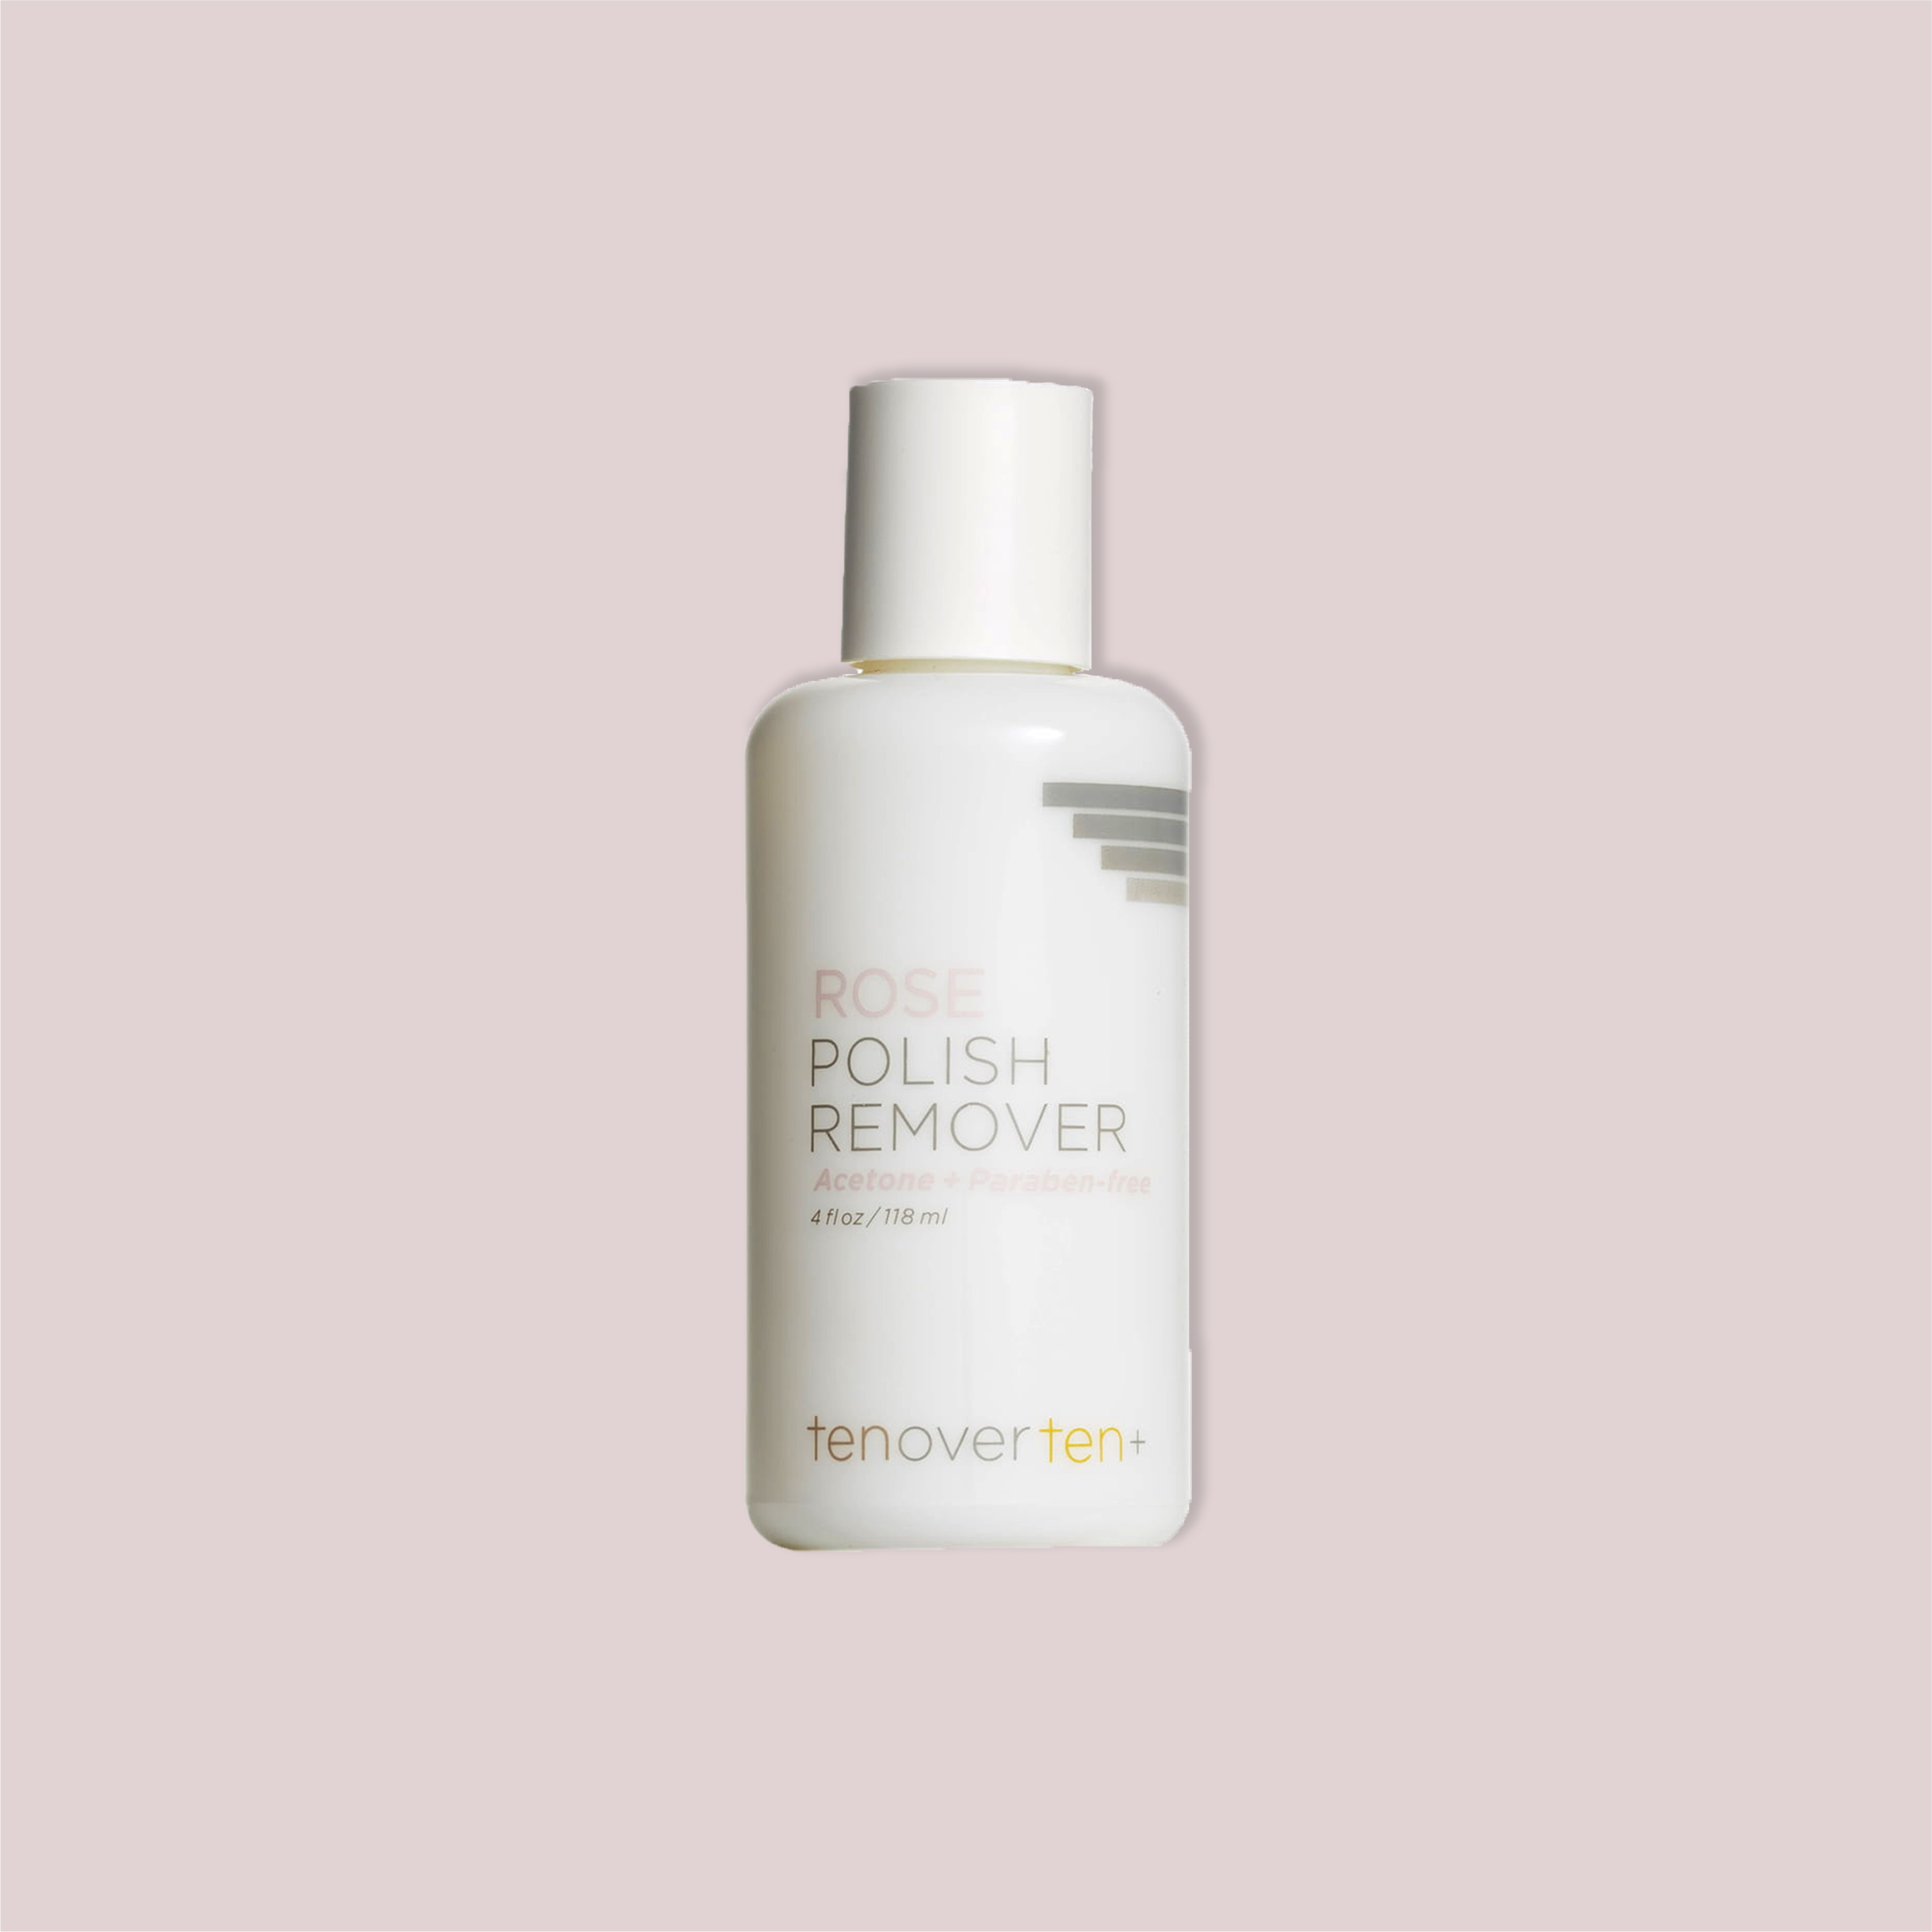 Rose Polish Remover by Ten Over Ten